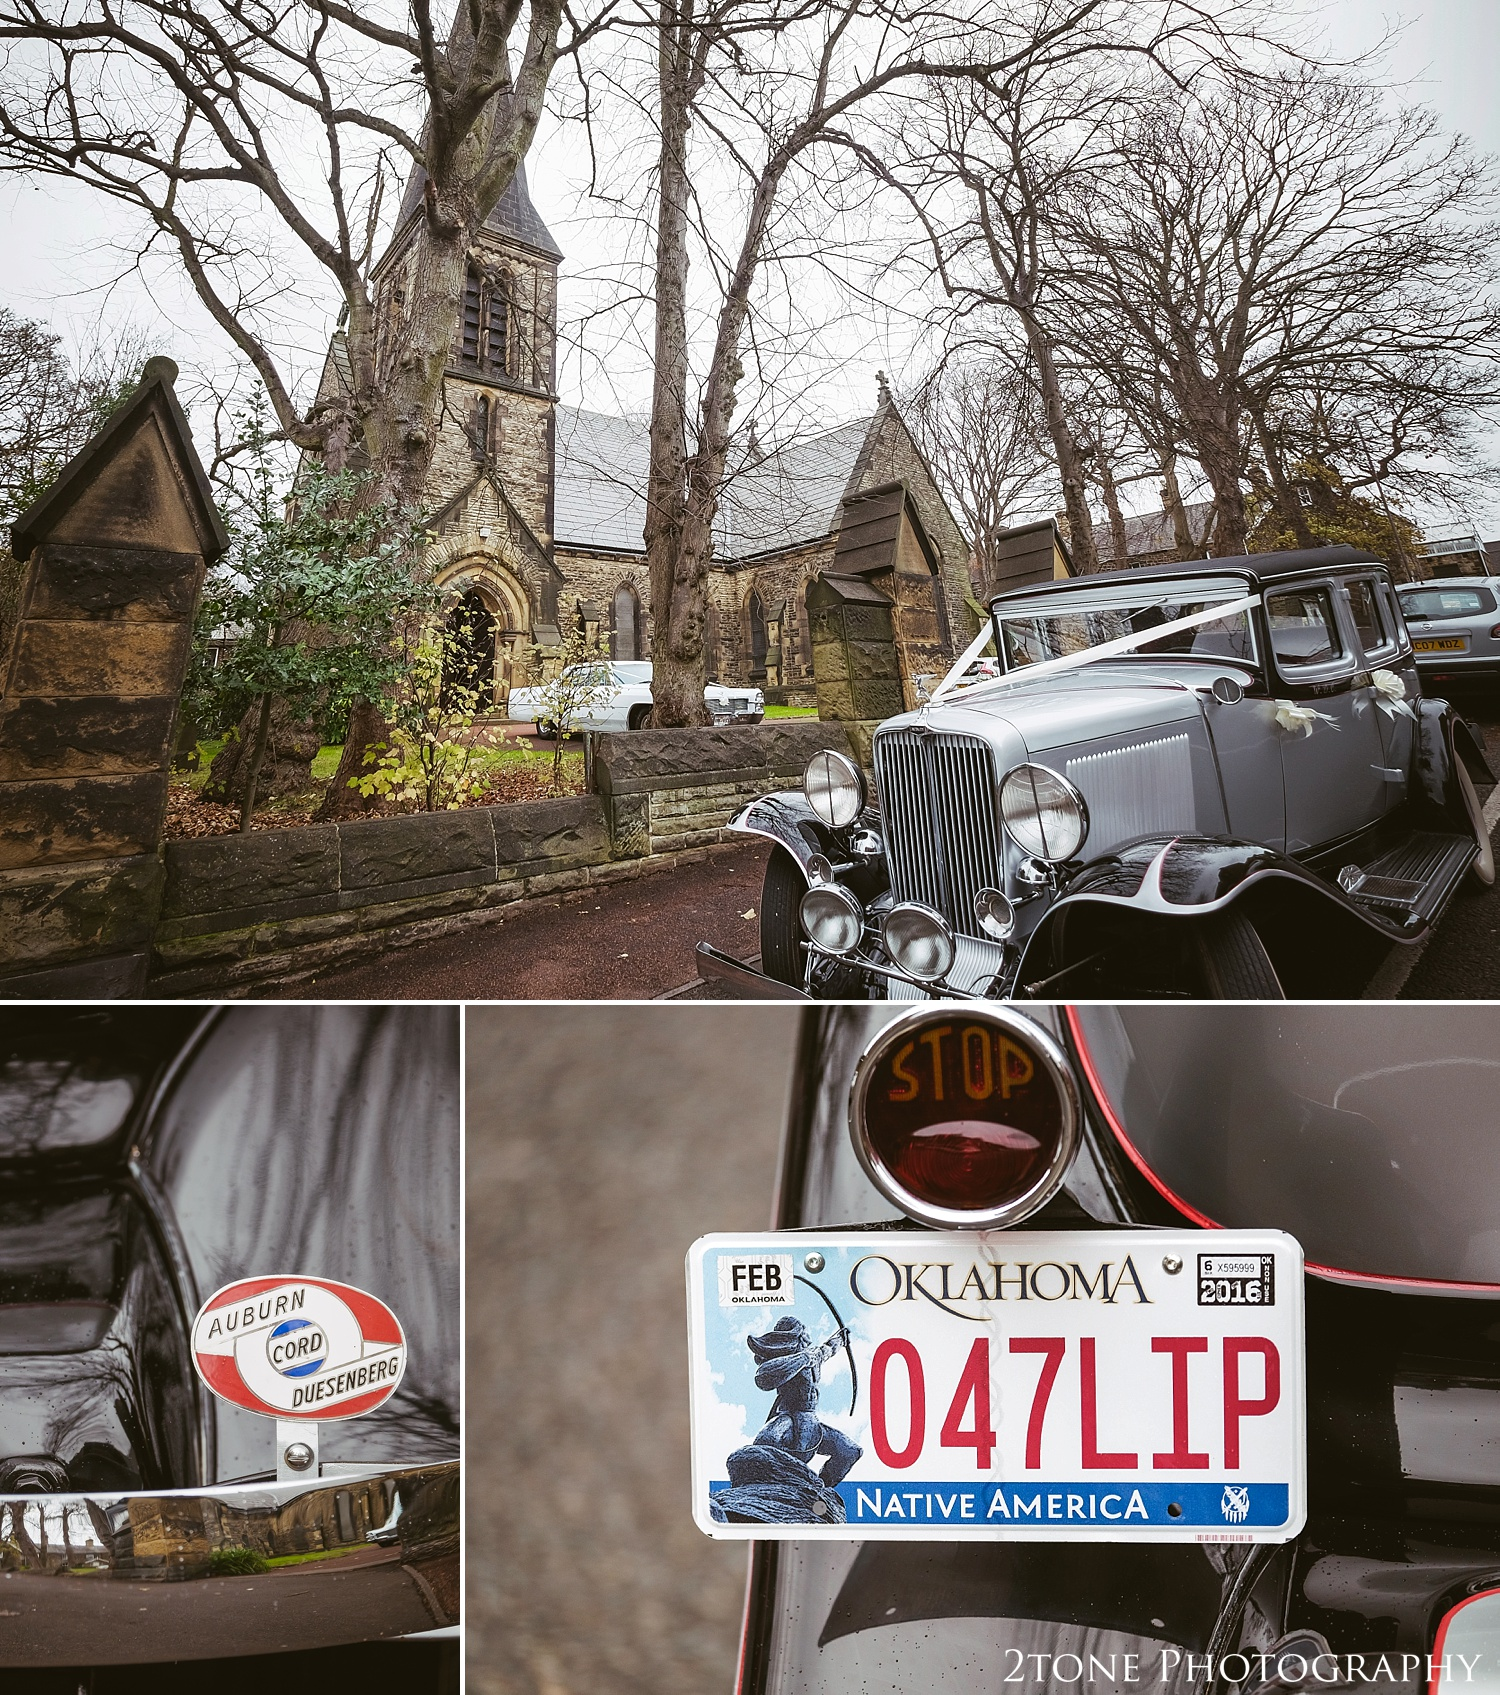 American vintage wedding car.  Weddings at the Vermonth Hotel by wedding photographers 2tone Photography www.2tonephotography.co.uk